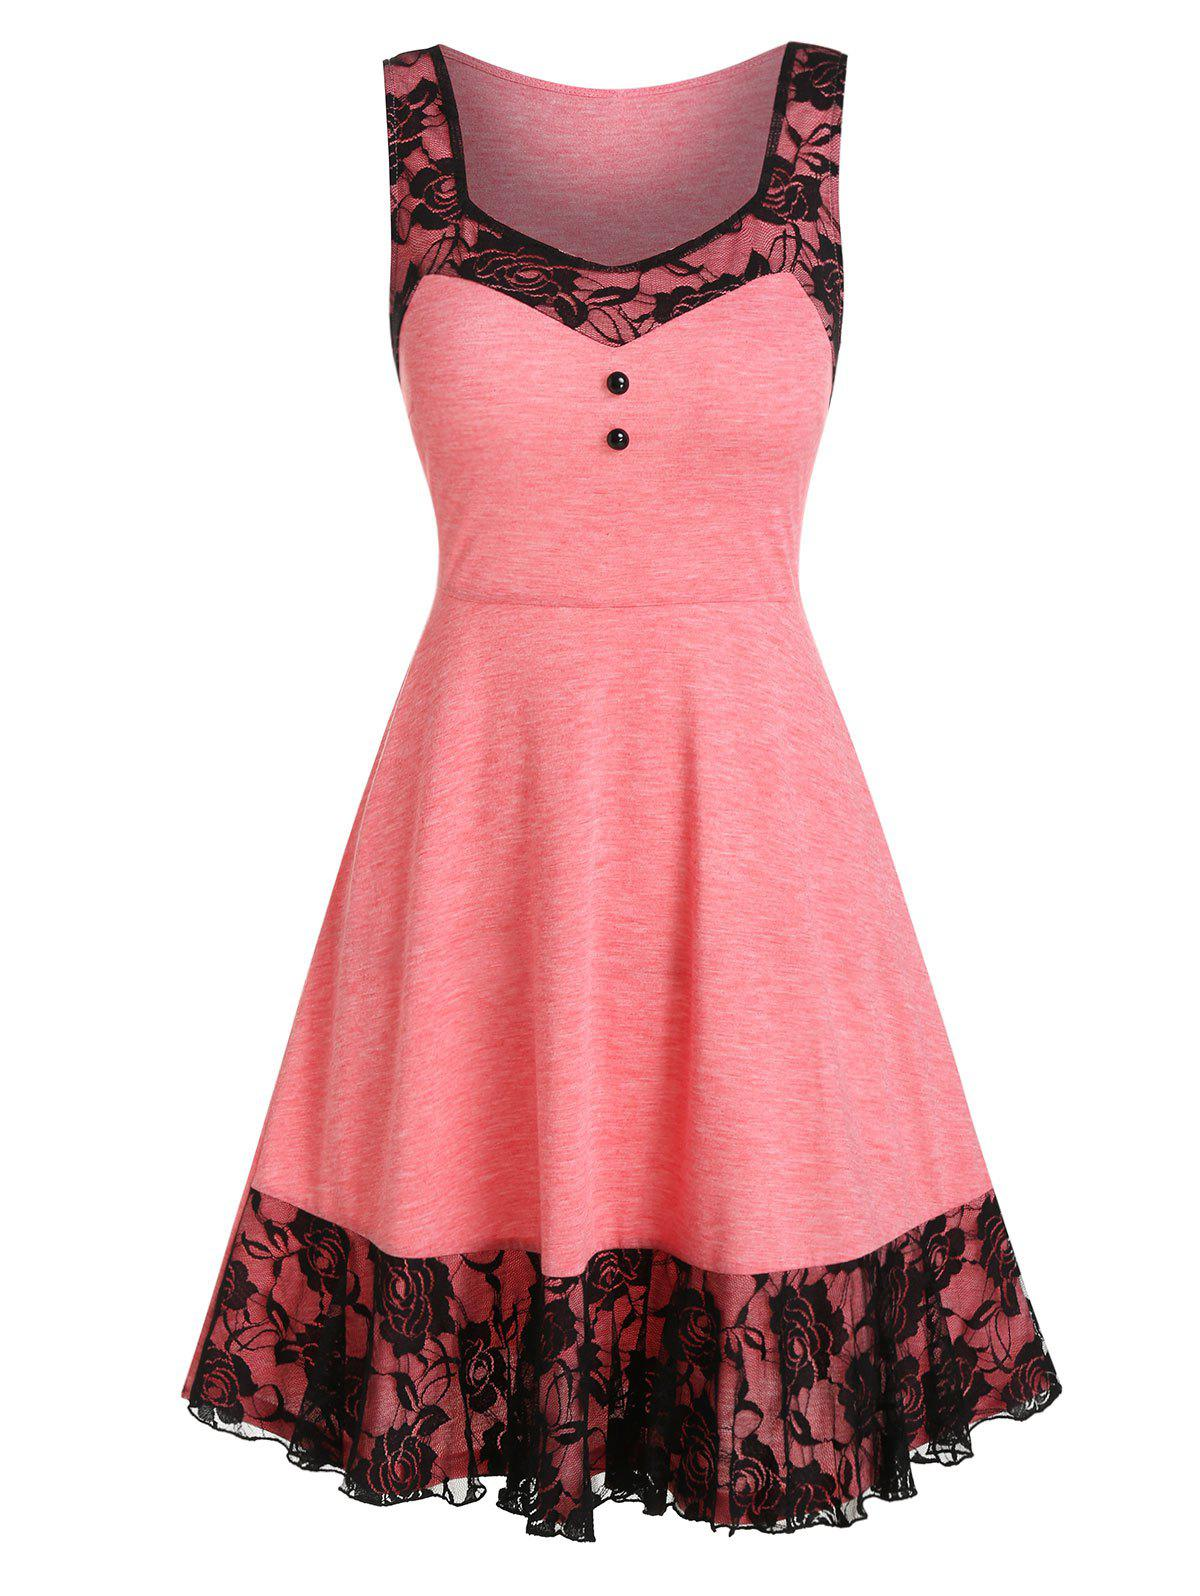 Lace Insert Mock Button Mini Sleeveless Dress - PINK ROSE L